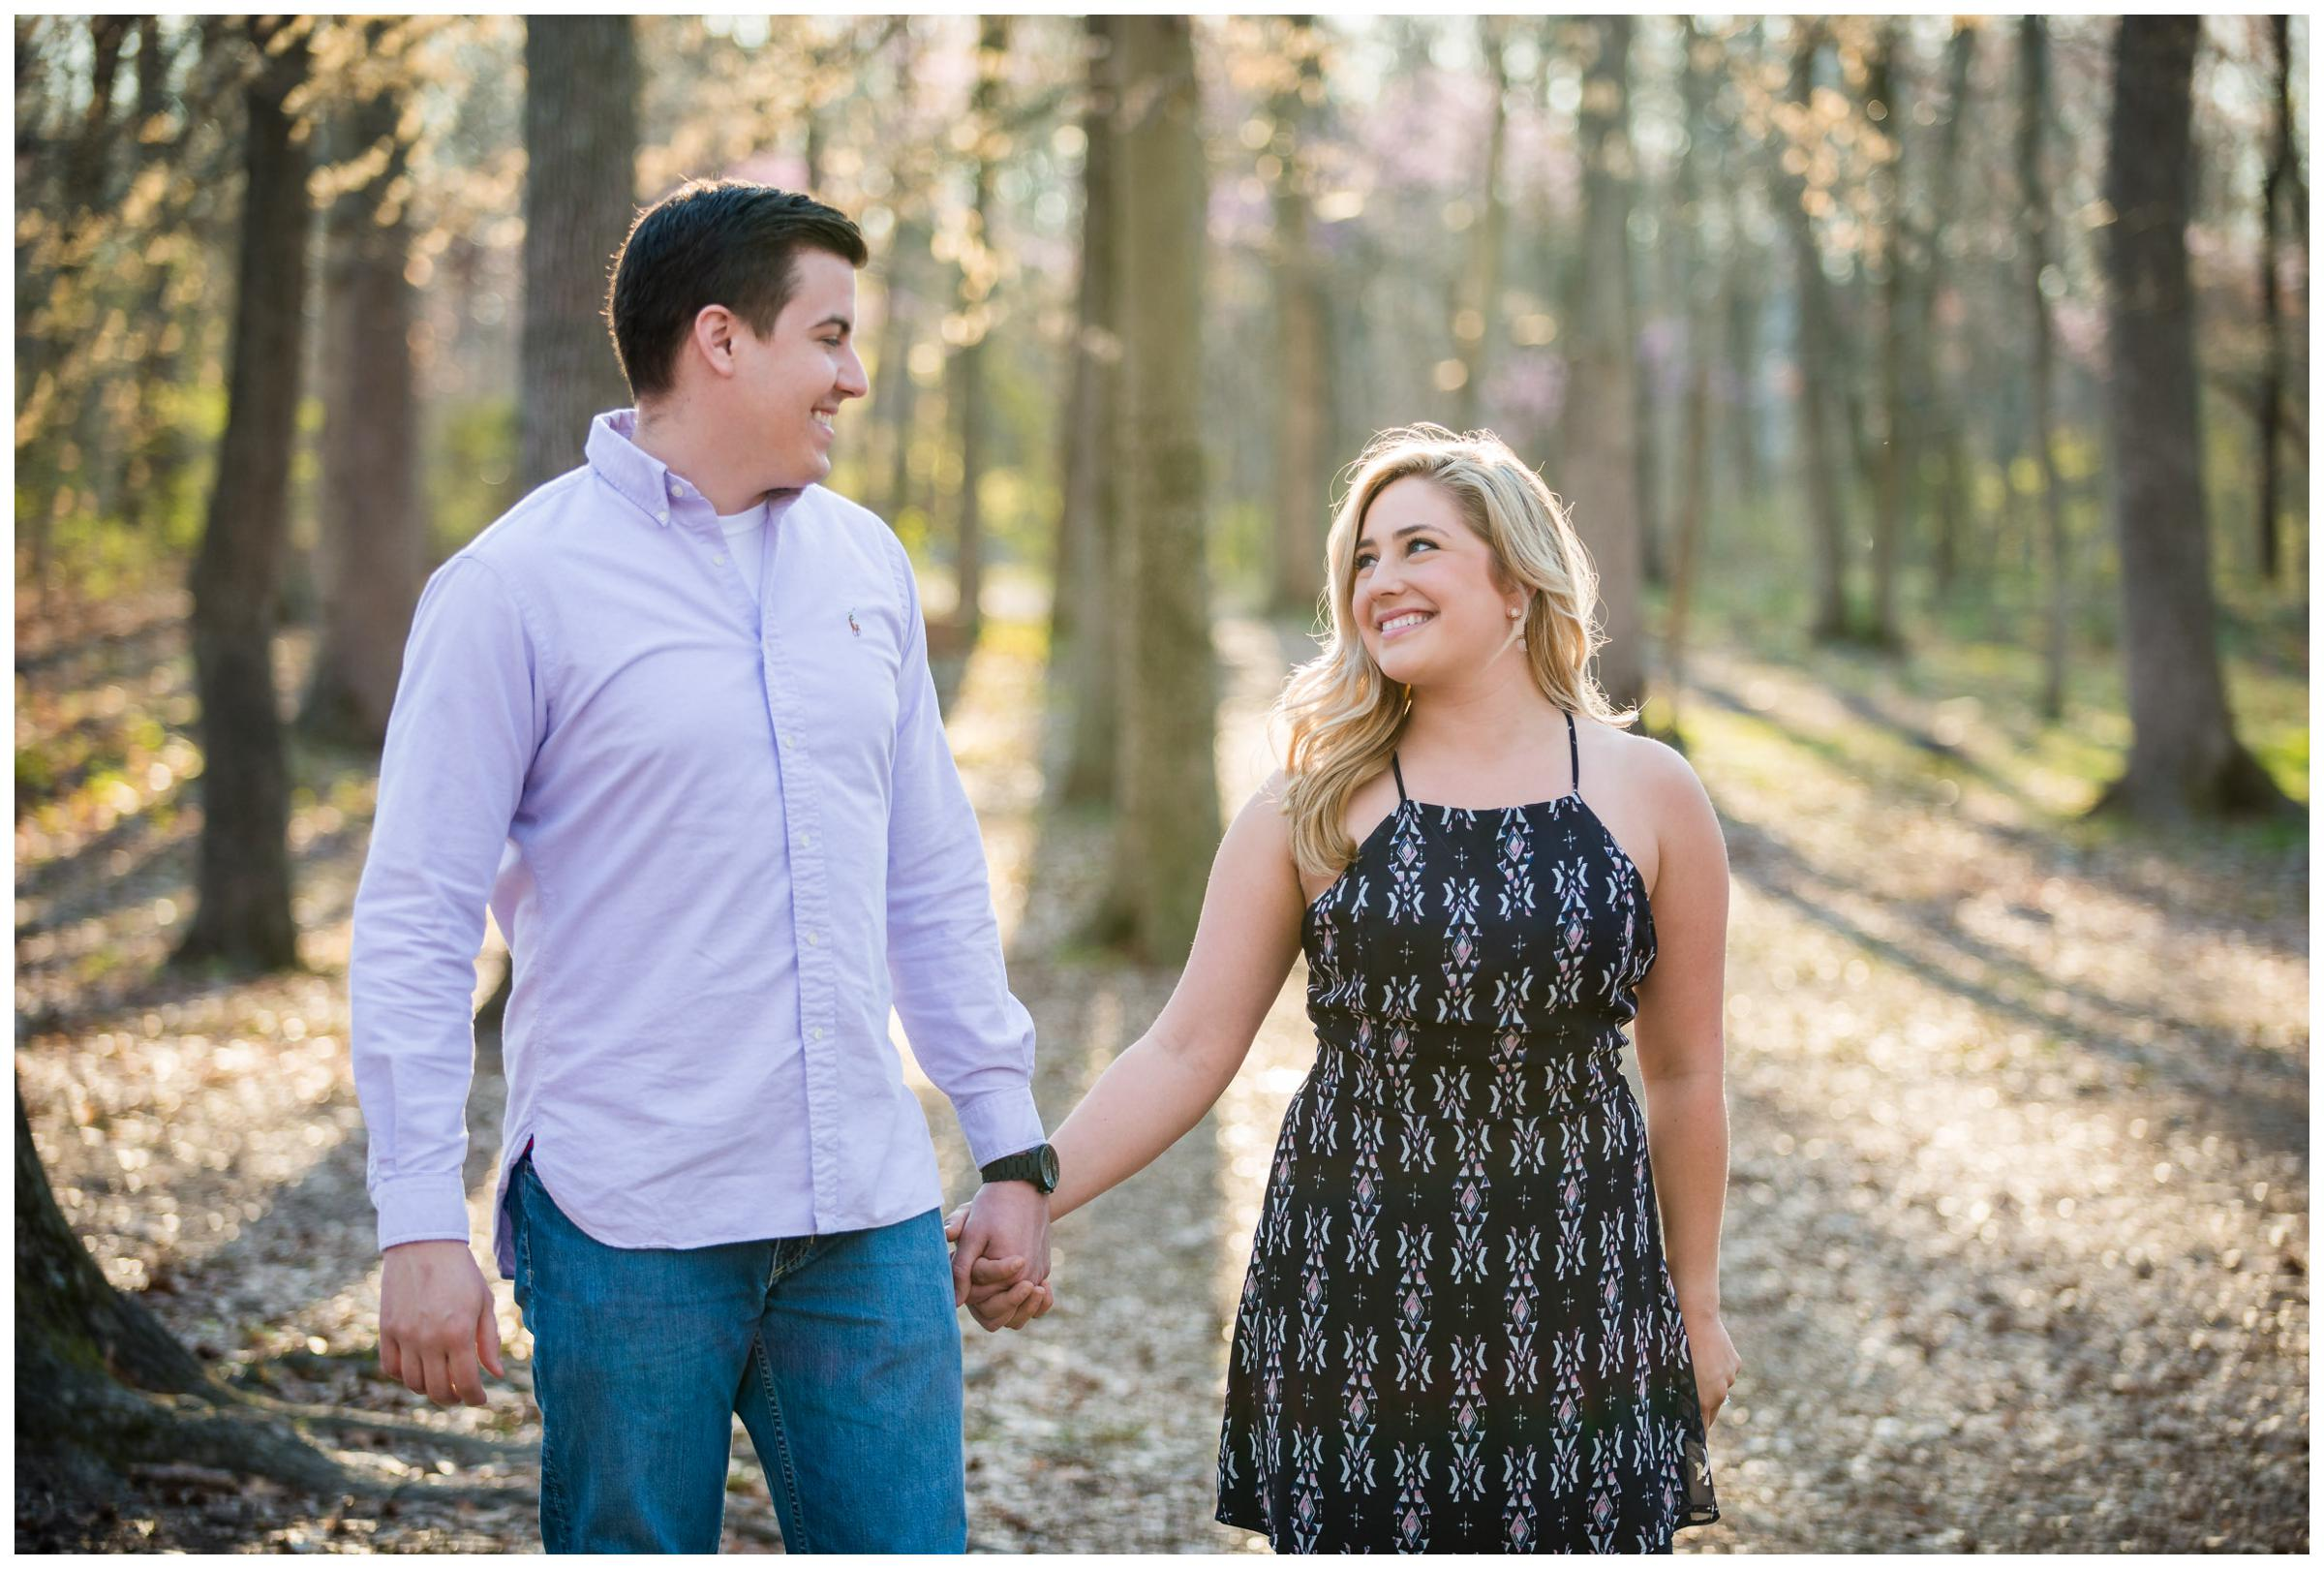 engaged couple in forrest